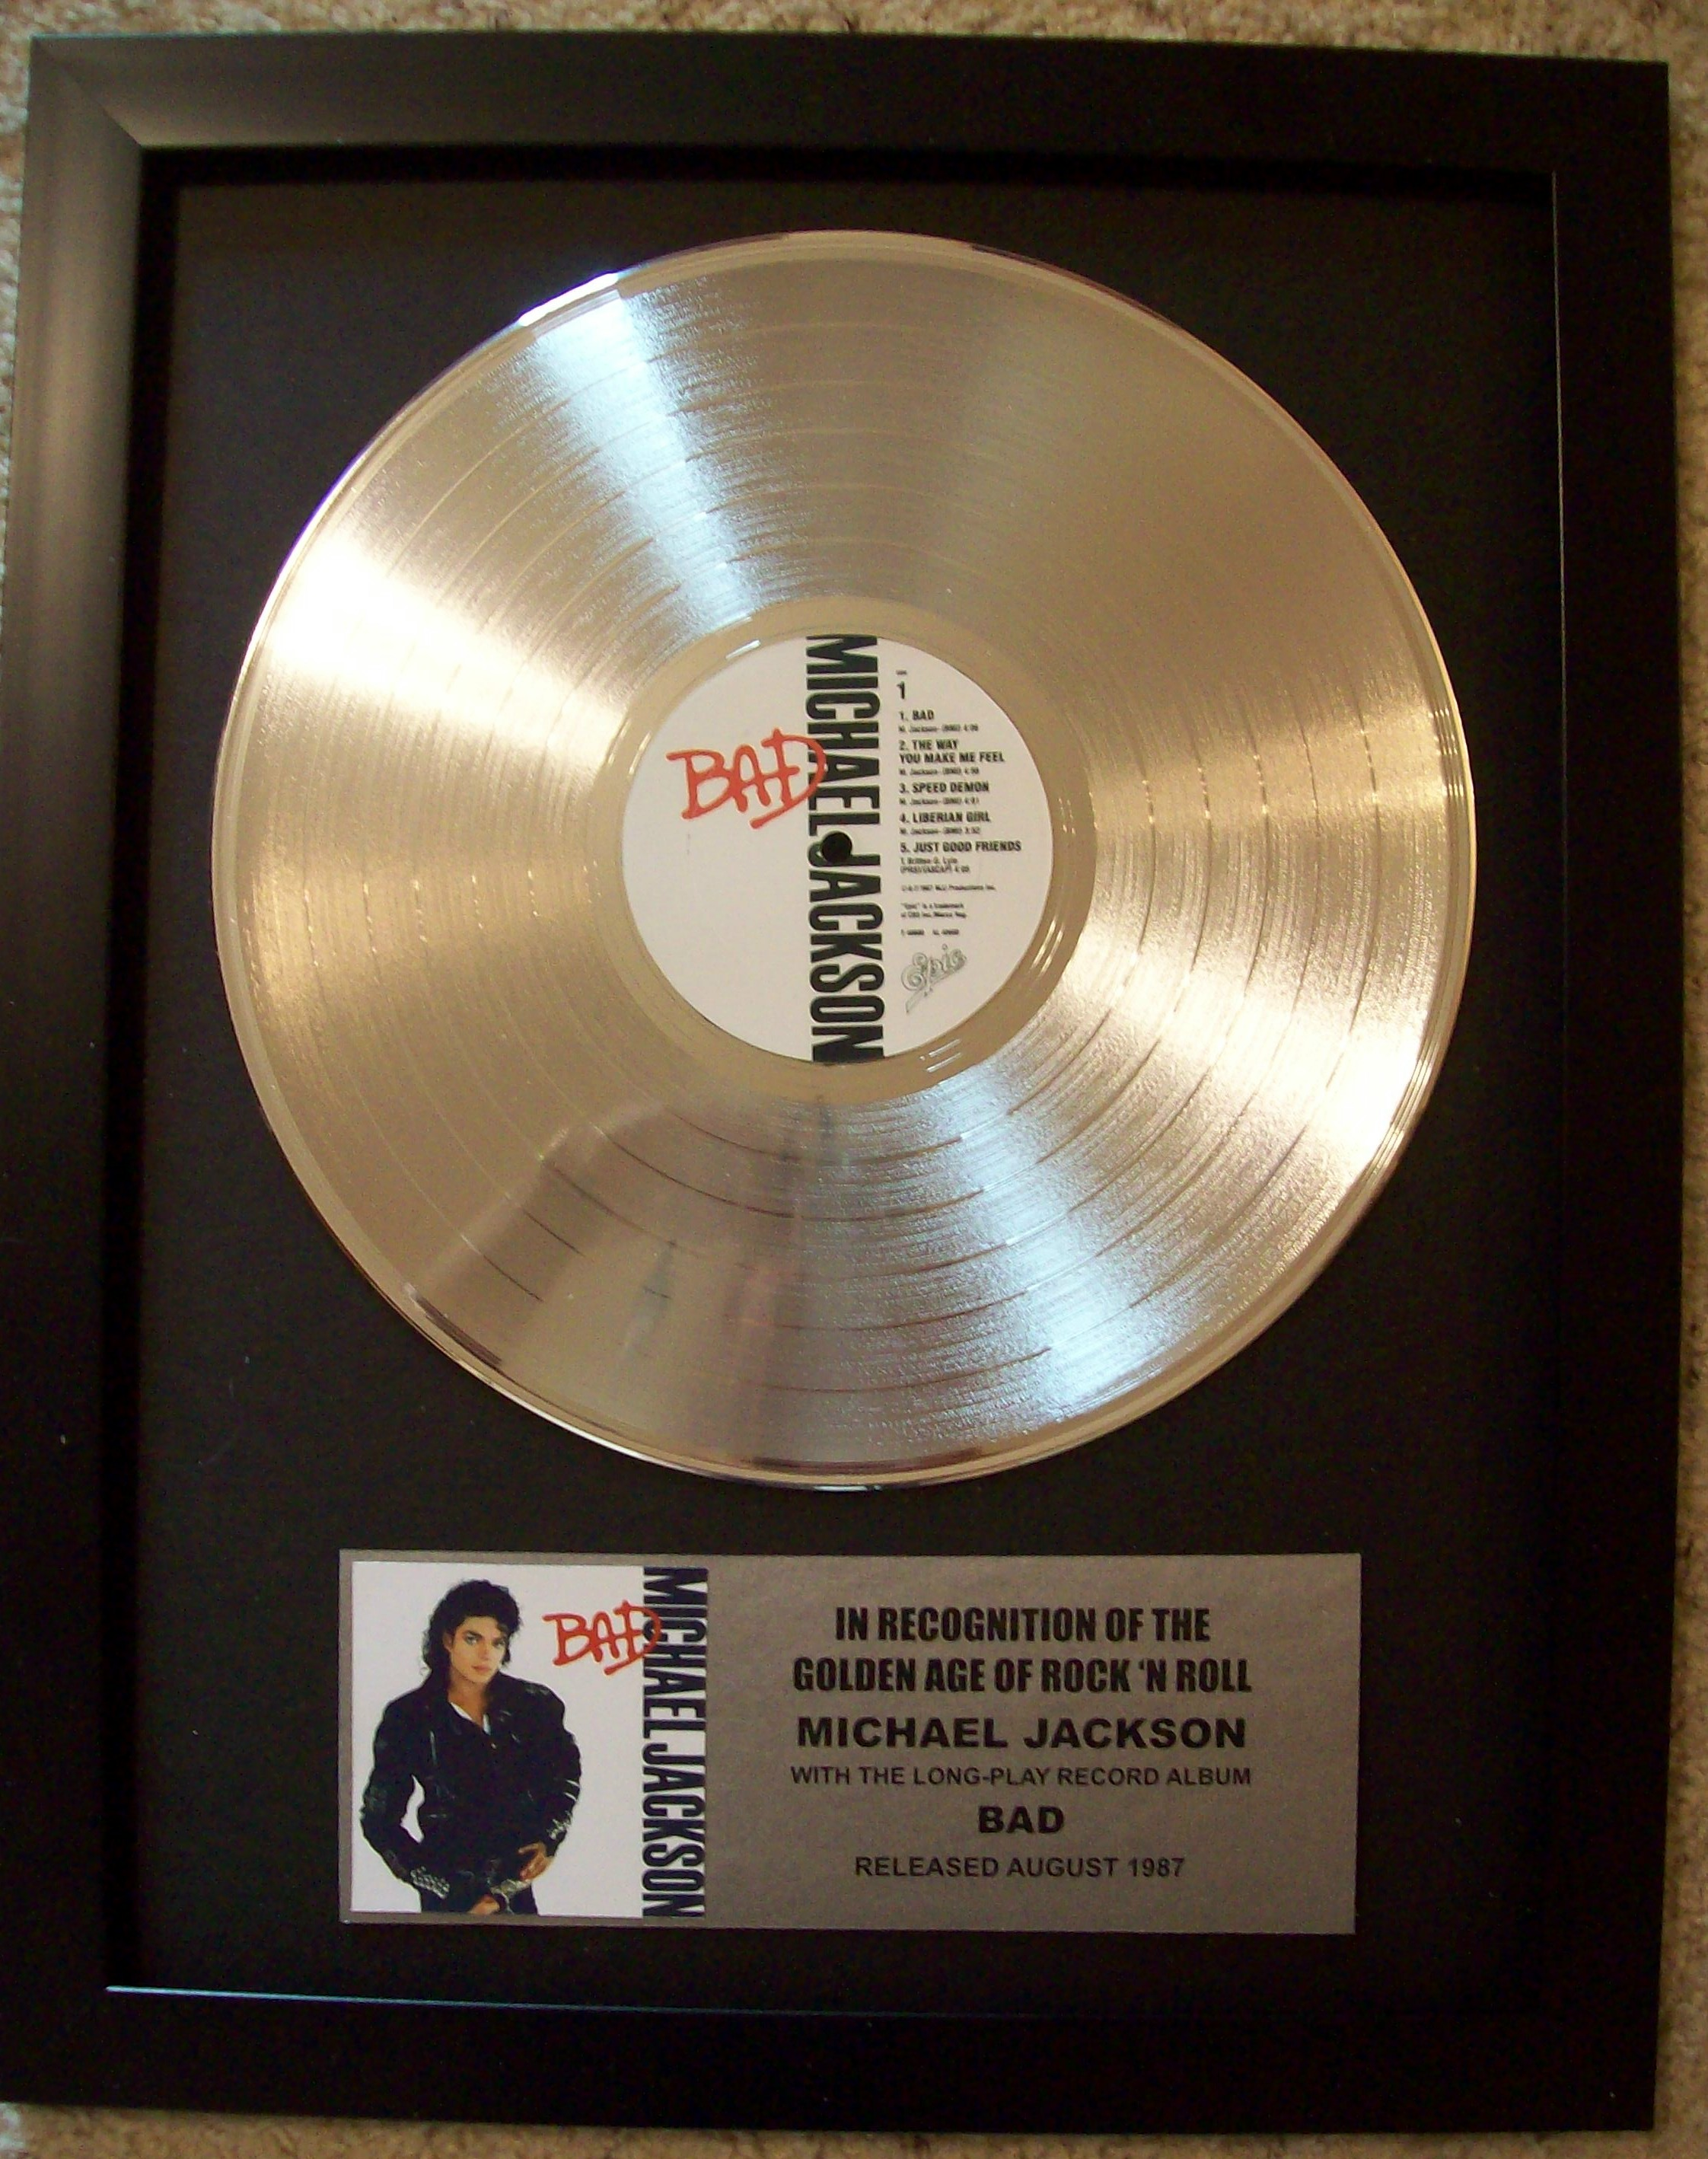 Image for Michael Jackson BAD Platinum LP Record